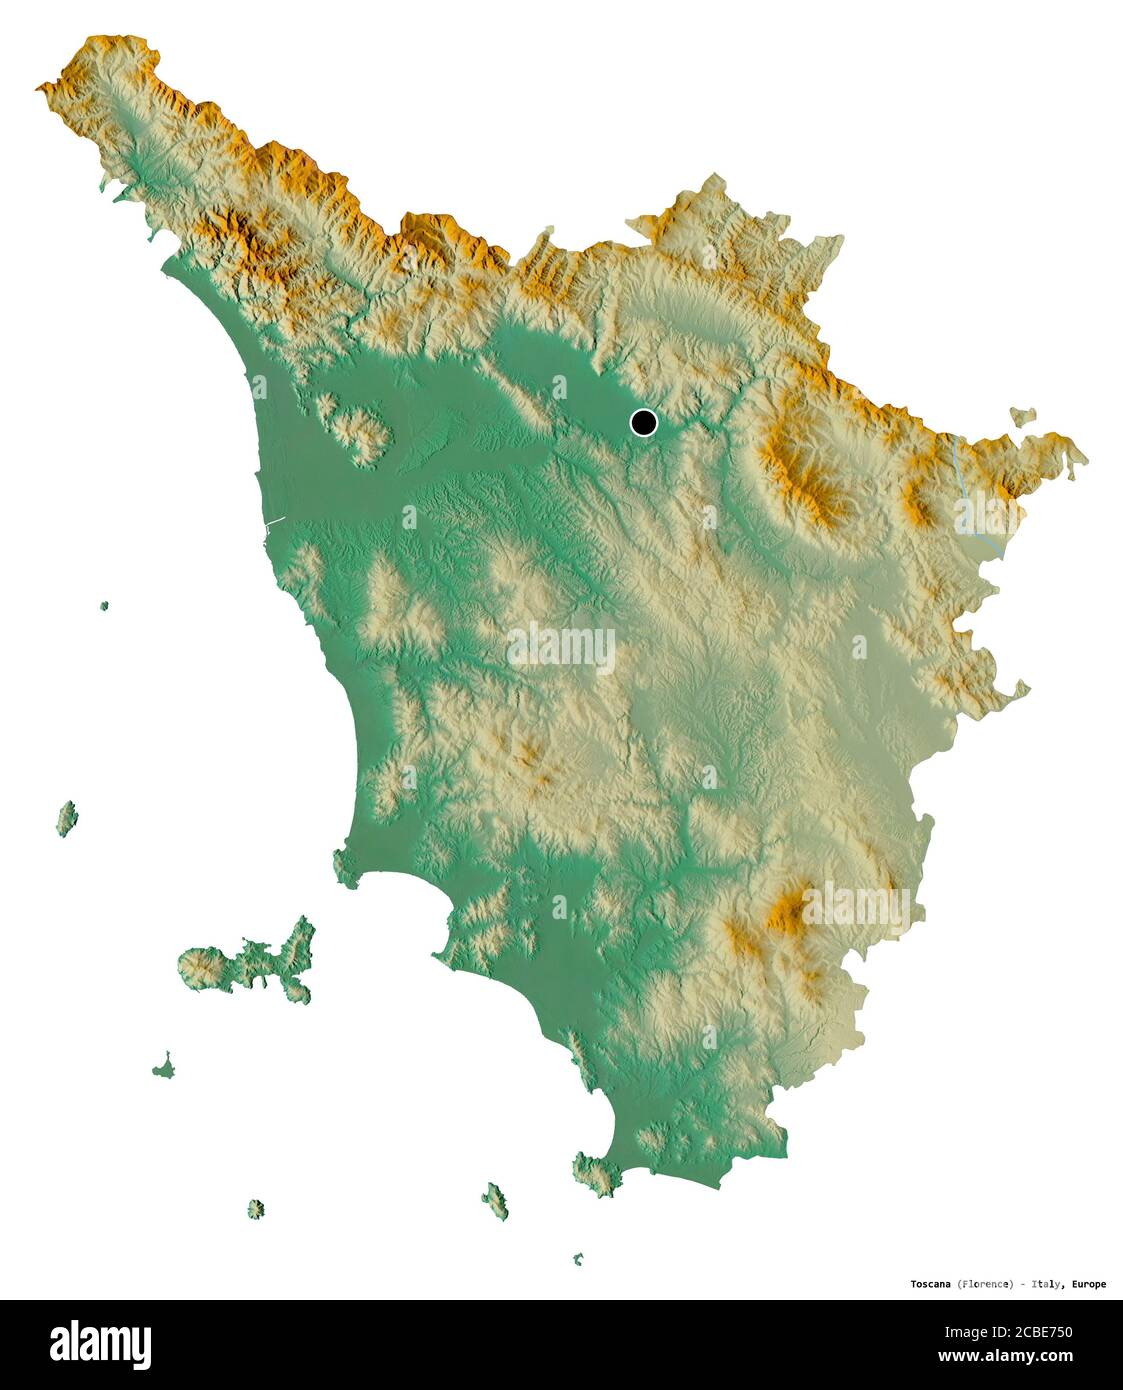 Toscana Fisica Cartina.Shape Of Toscana Region Of Italy With Its Capital Isolated On White Background Topographic Relief Map 3d Rendering Stock Photo Alamy